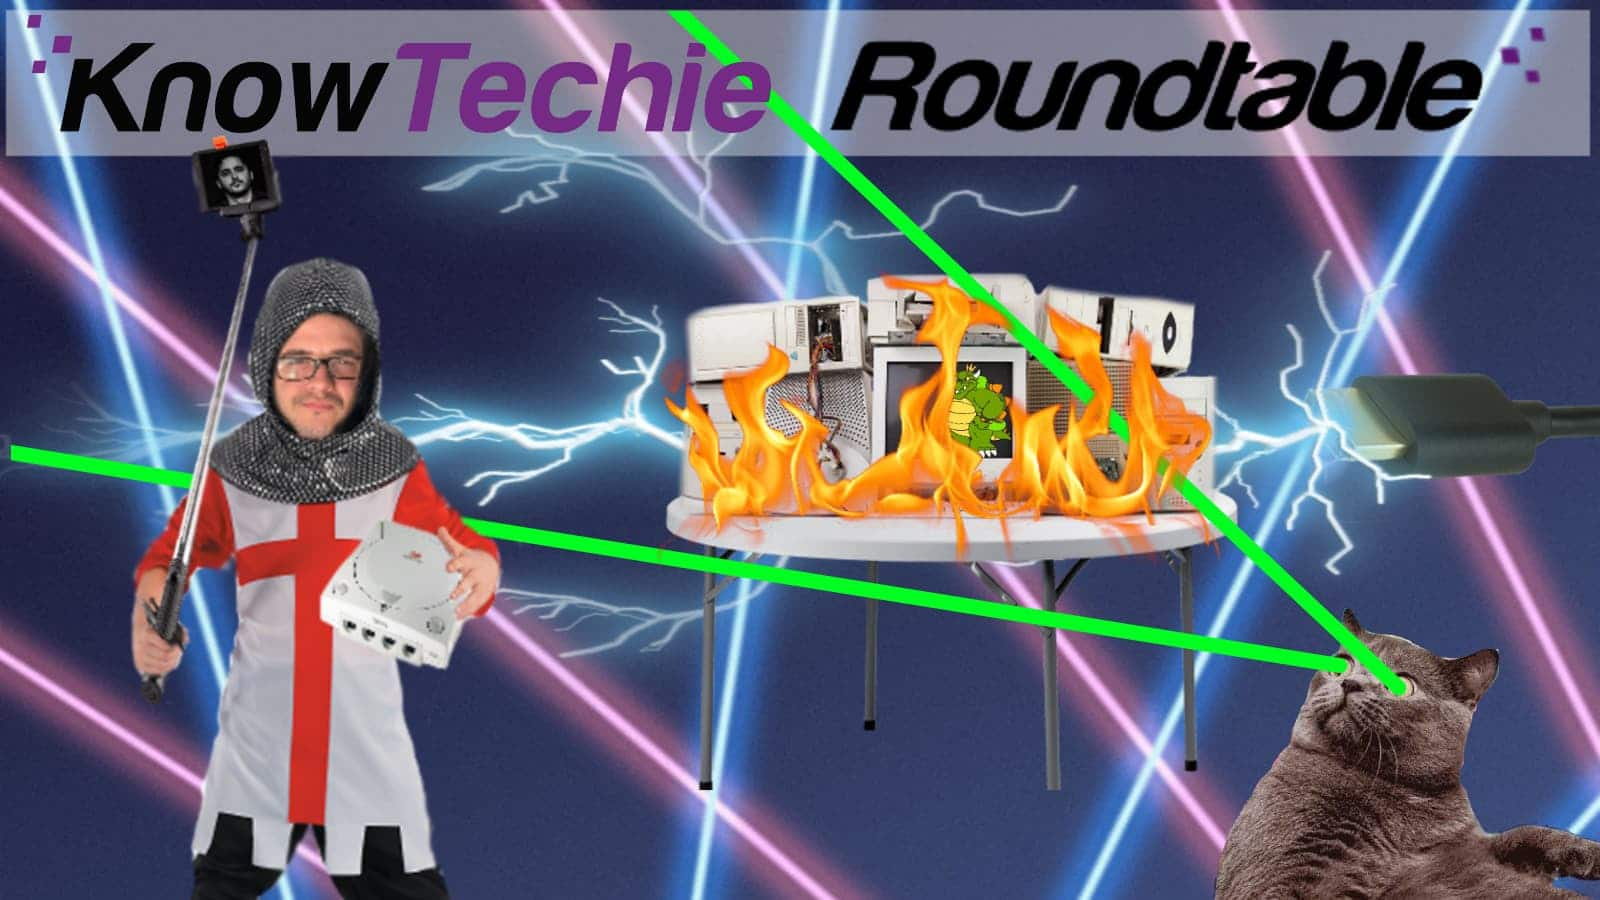 knowtechie roundtable